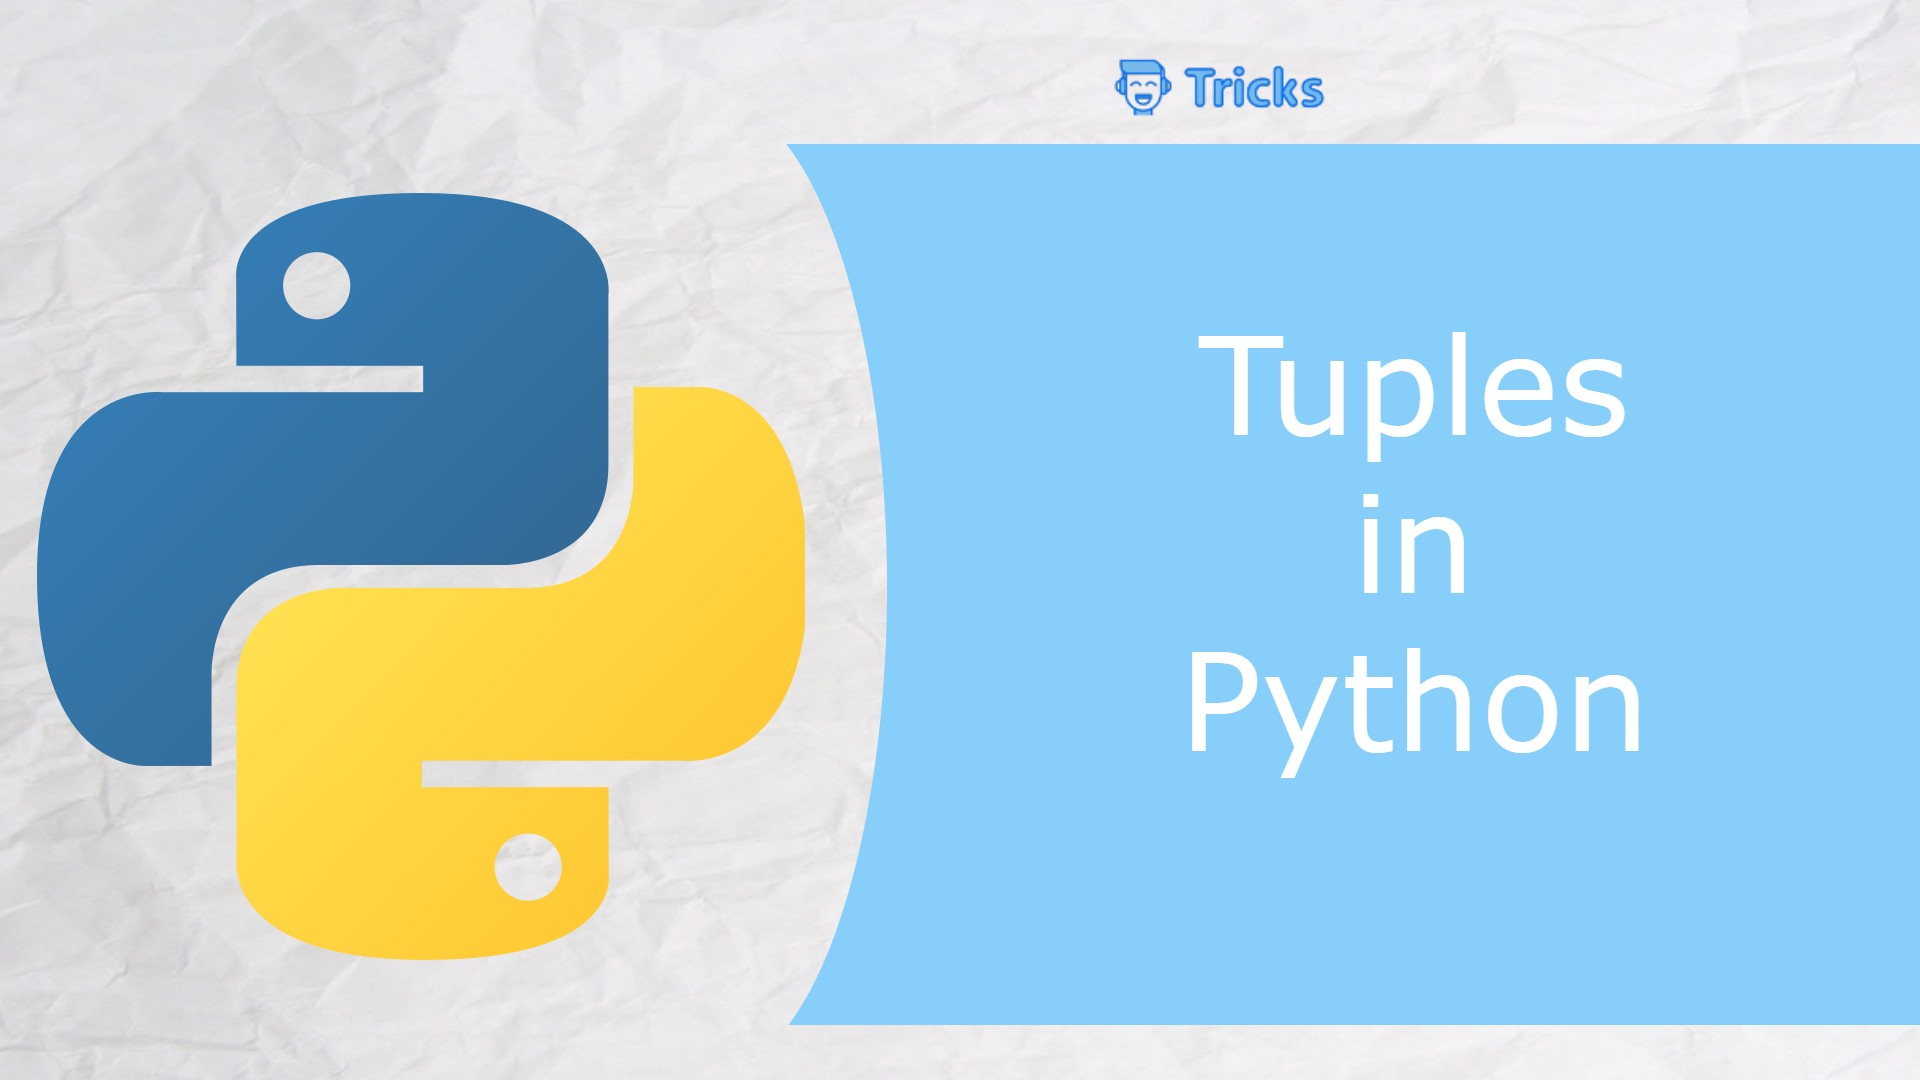 What are tuples in python